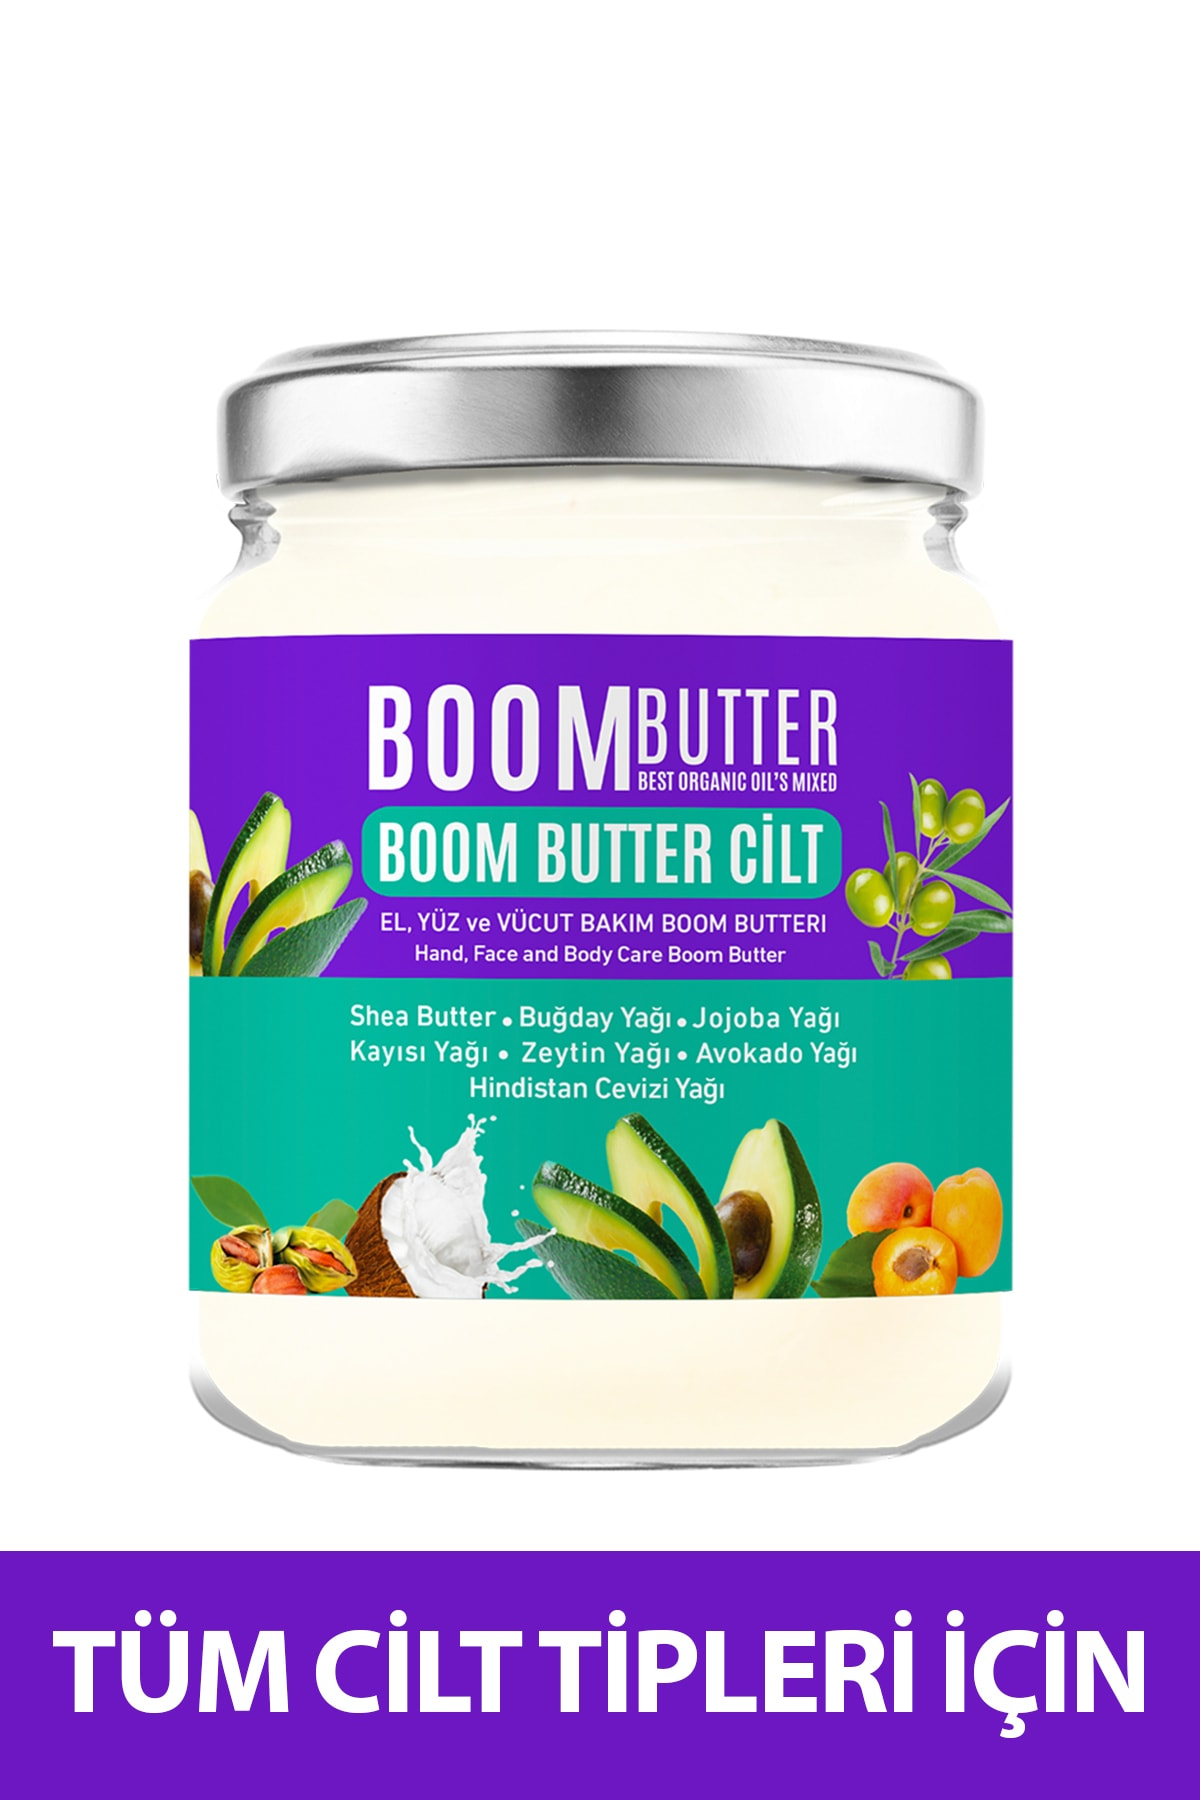 Herbal Science Boom Butter Cilt Bakım Yağı 190 ml 8697863681723 1